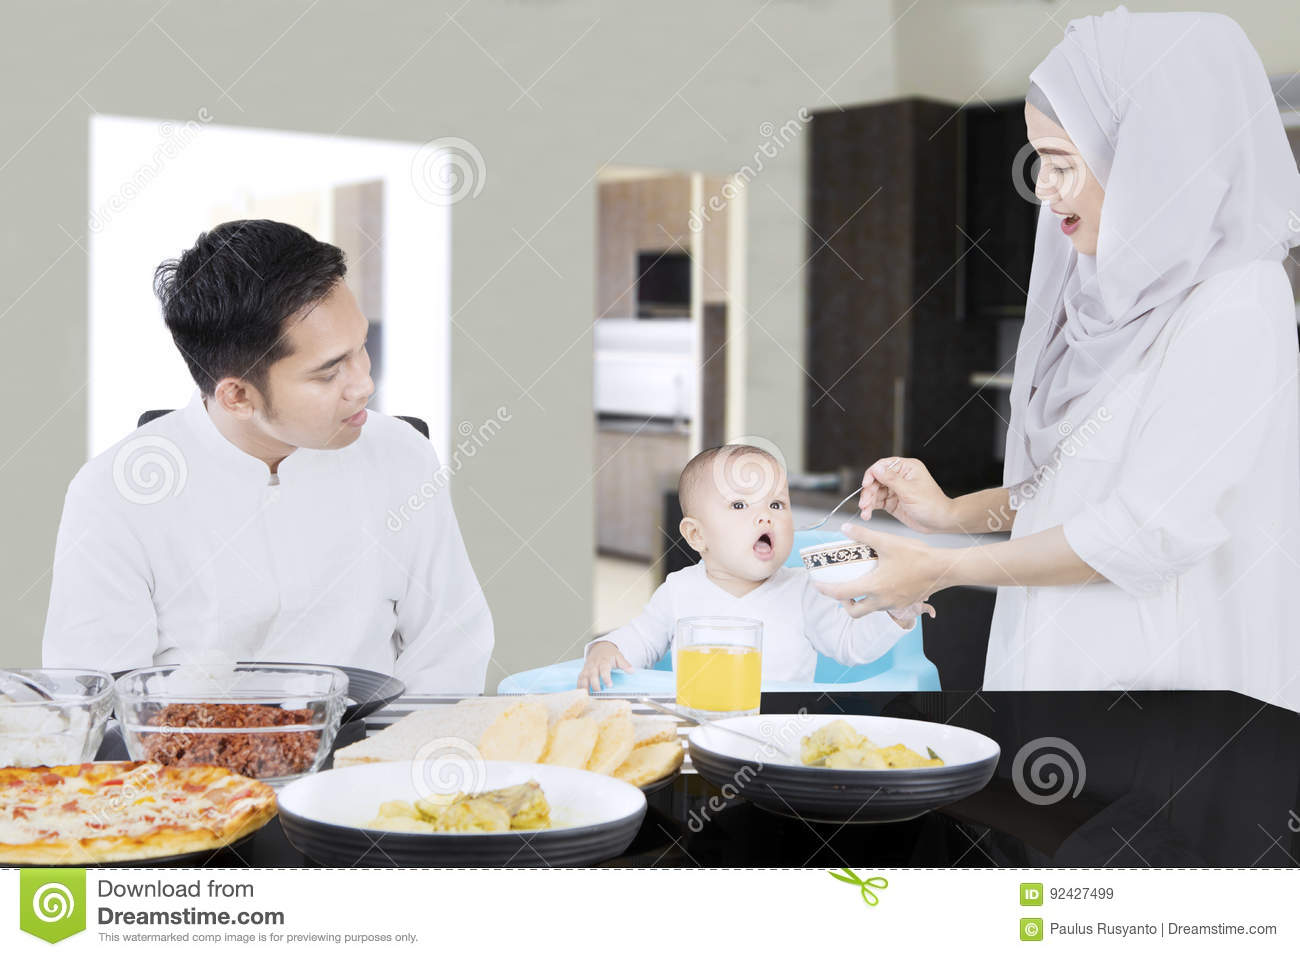 Young muslim women feeding her baby on a high chair with her husband in the  dining room at home a61e586020